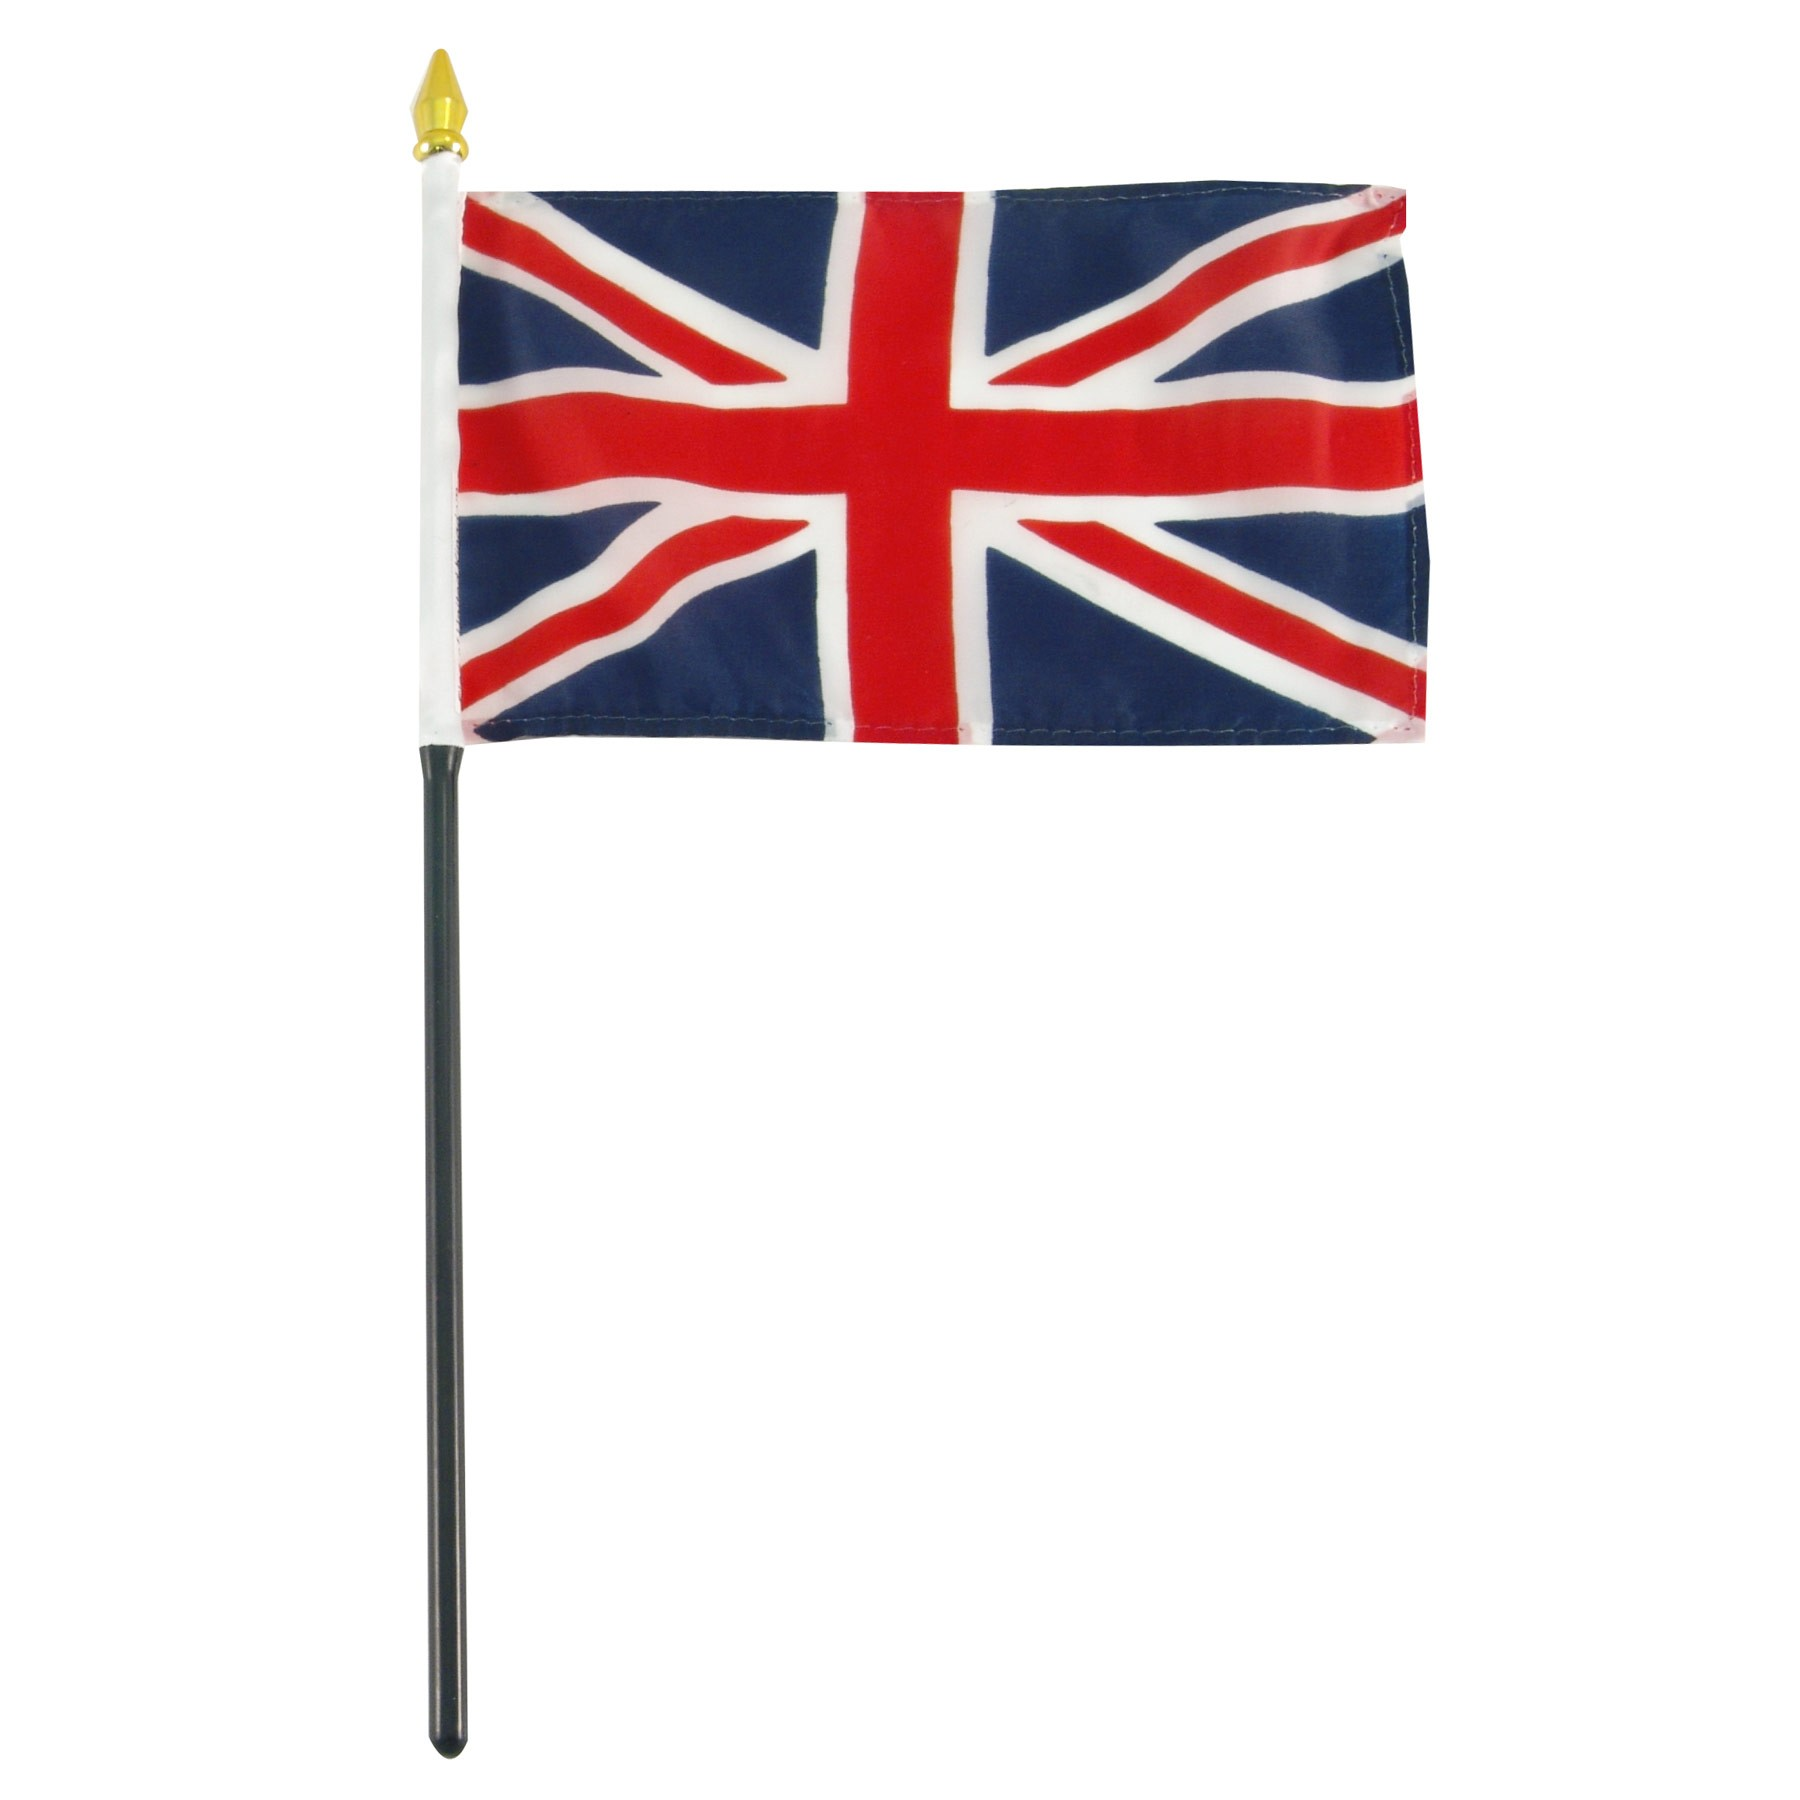 20 Images Of British Flag Free Cliparts -20 Images Of British Flag Free Cliparts That You Can Download To You-12